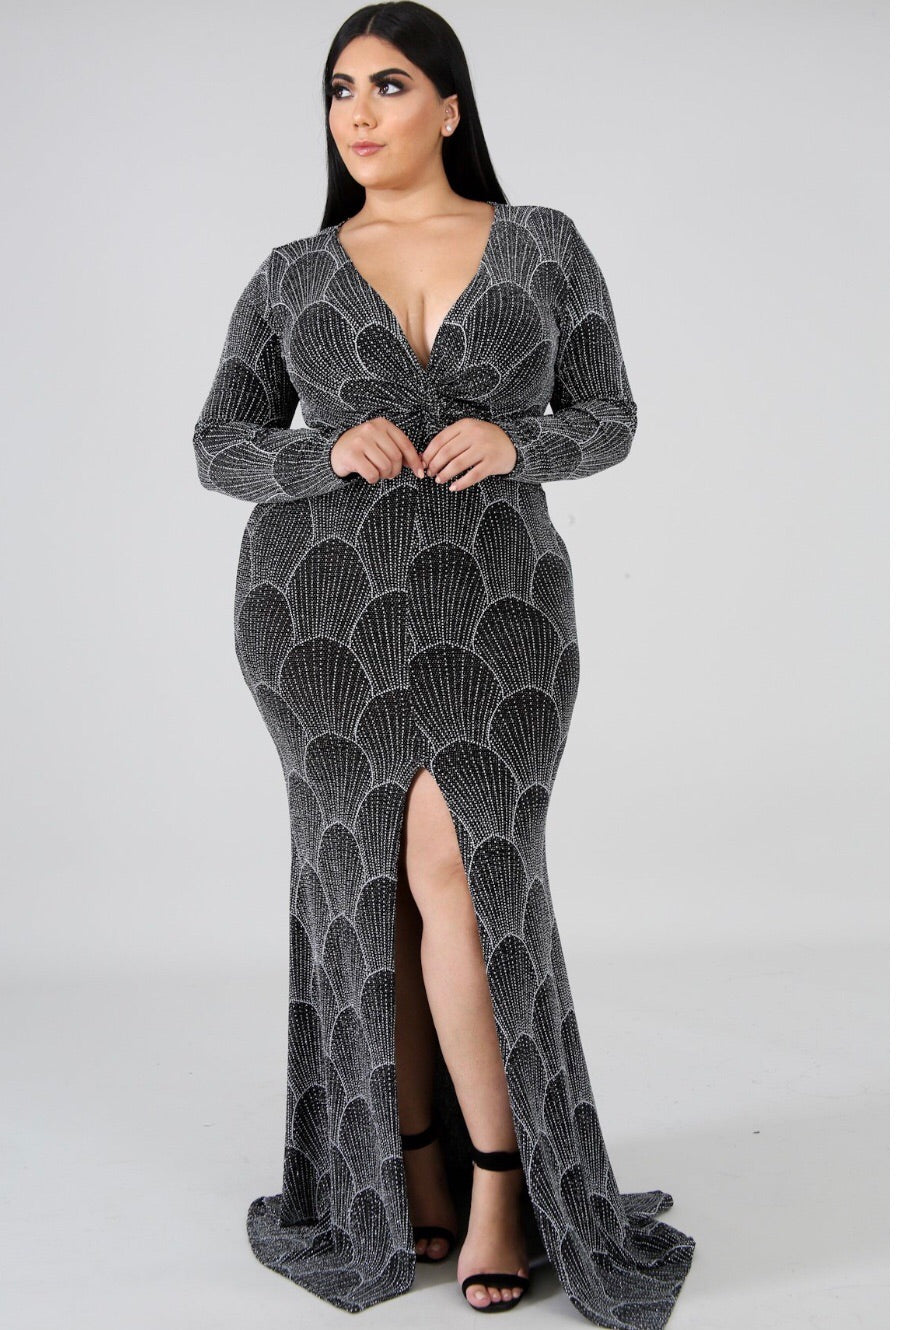 Glitter Long Sleeve Plus Size Dress - Semai House Of fashion